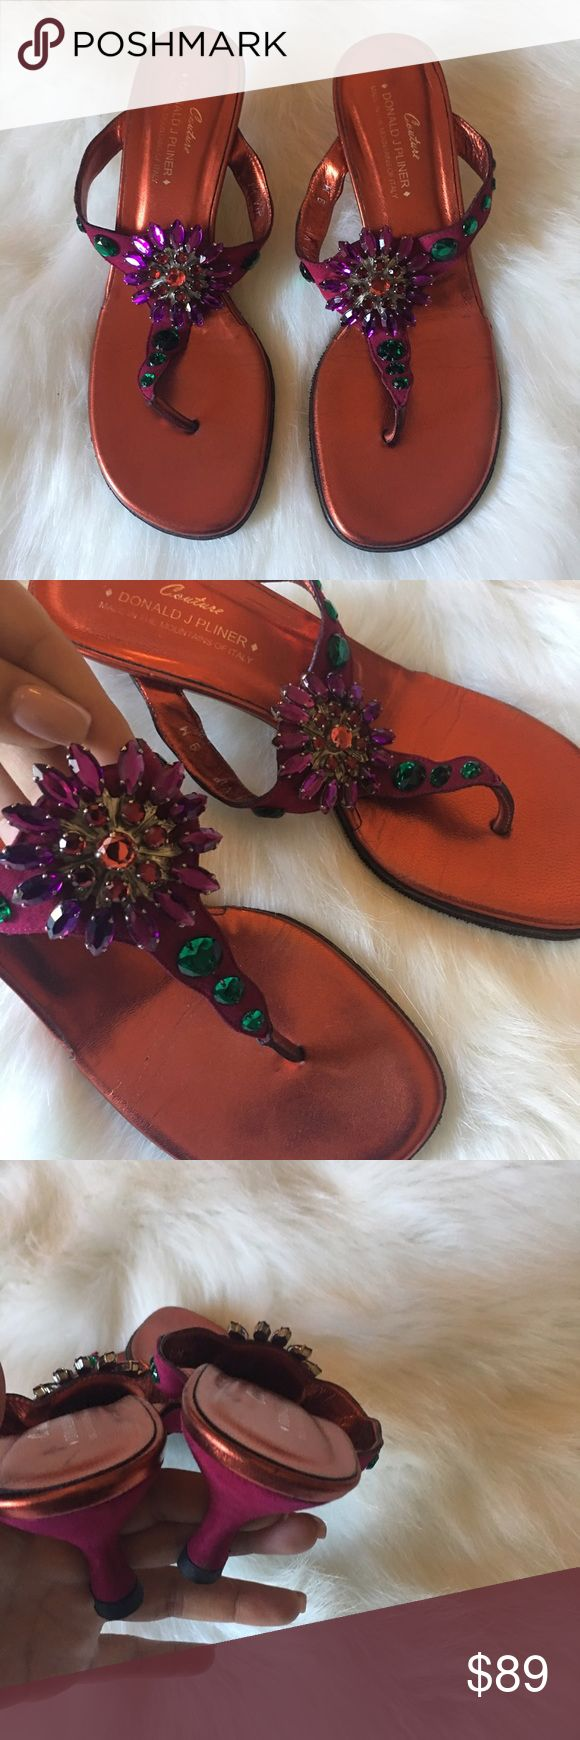 1 hr sale ⏰Donald J Pliner Couture jeweled sandals So beautiful! T-strap low heeled sandals. Gorgeous jeweled detailing, all jewels are in place and perfect. These have been worn very gently 2 times. No flaws! No trades. Donald J. Pliner Shoes Sandals